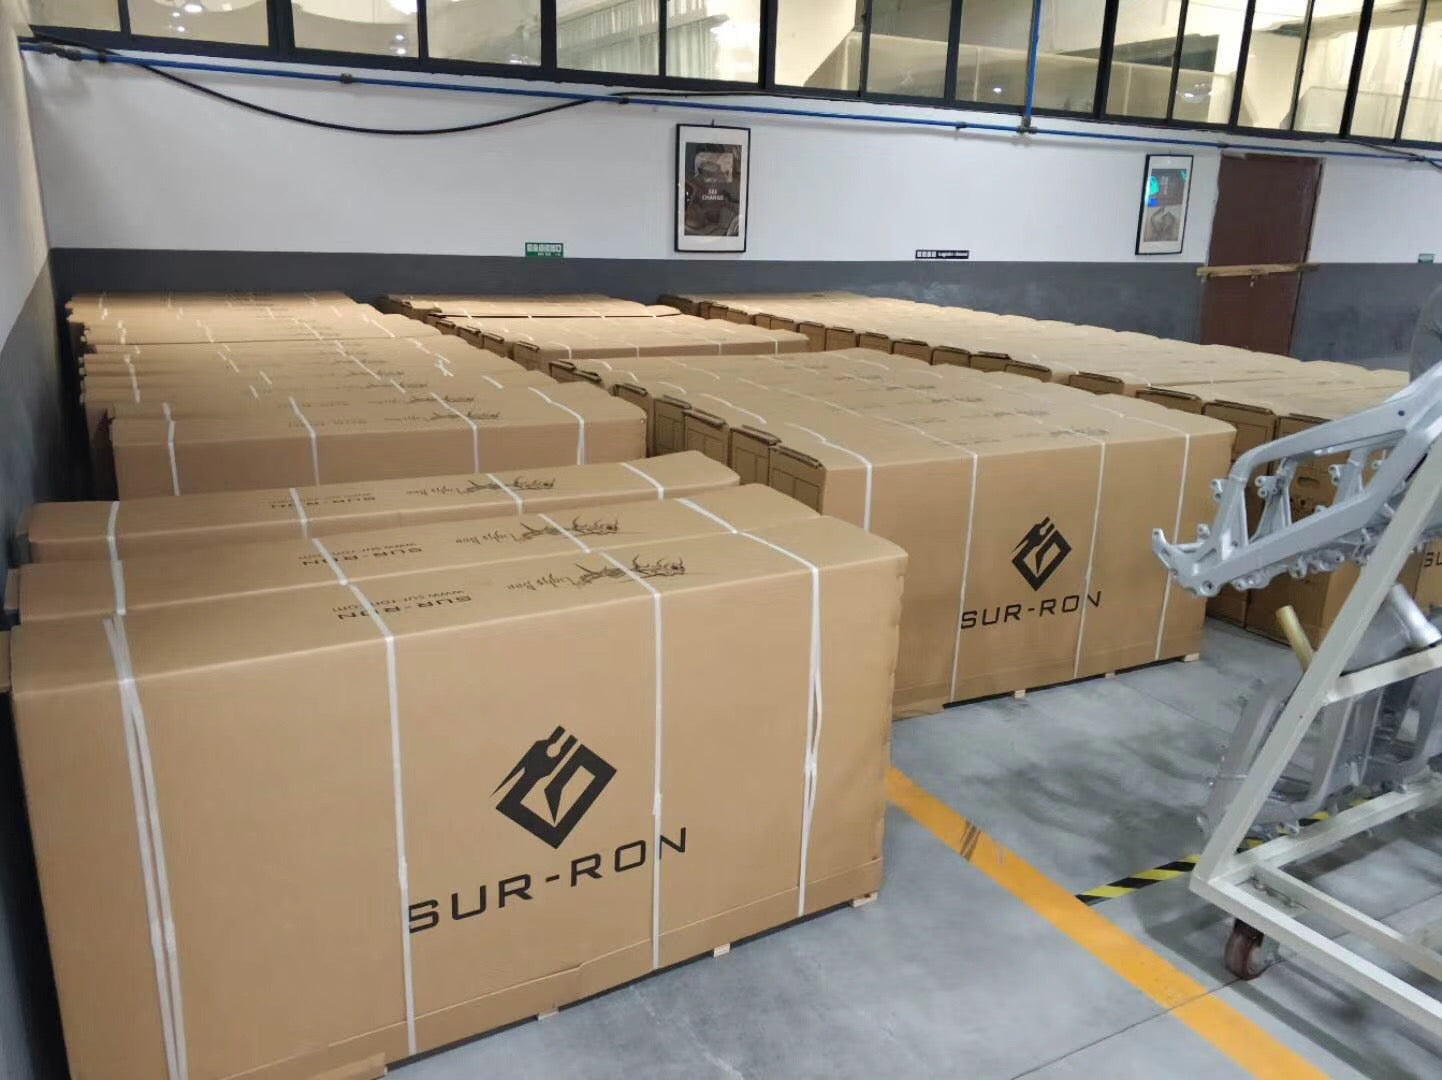 Surron Electric Bikes in Boxes